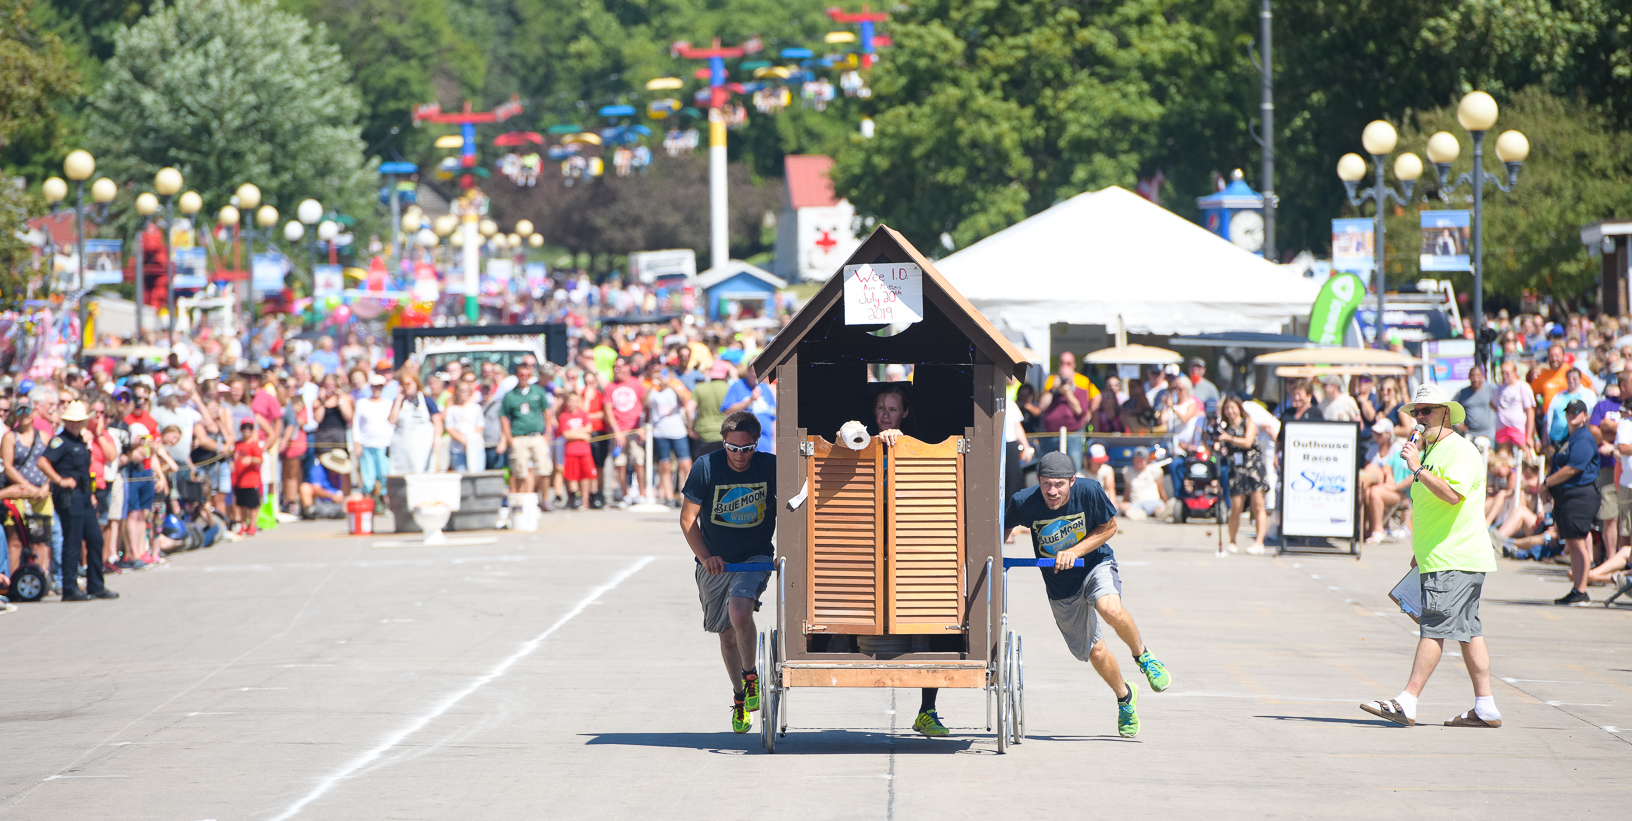 A team competes in the Outhouse Race at the Iowa State Fair while a large crowd watches on the Grand Concourse. Photo credit: Joseph L. Murphy/Iowa Soybean Association